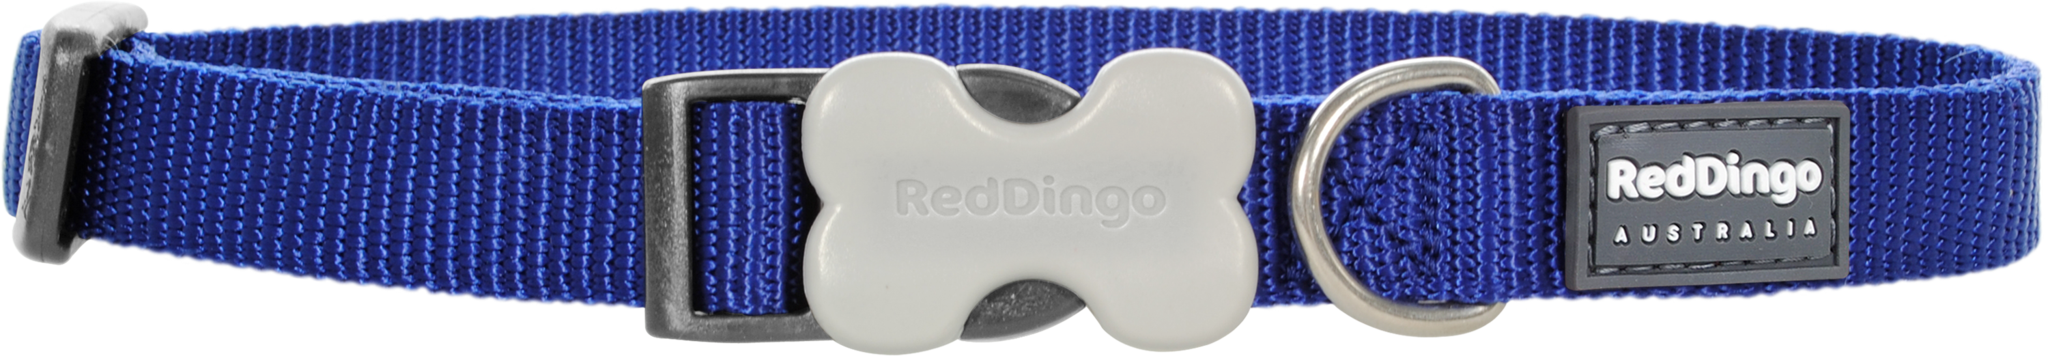 Red Dingo Classic Small Dog Collars